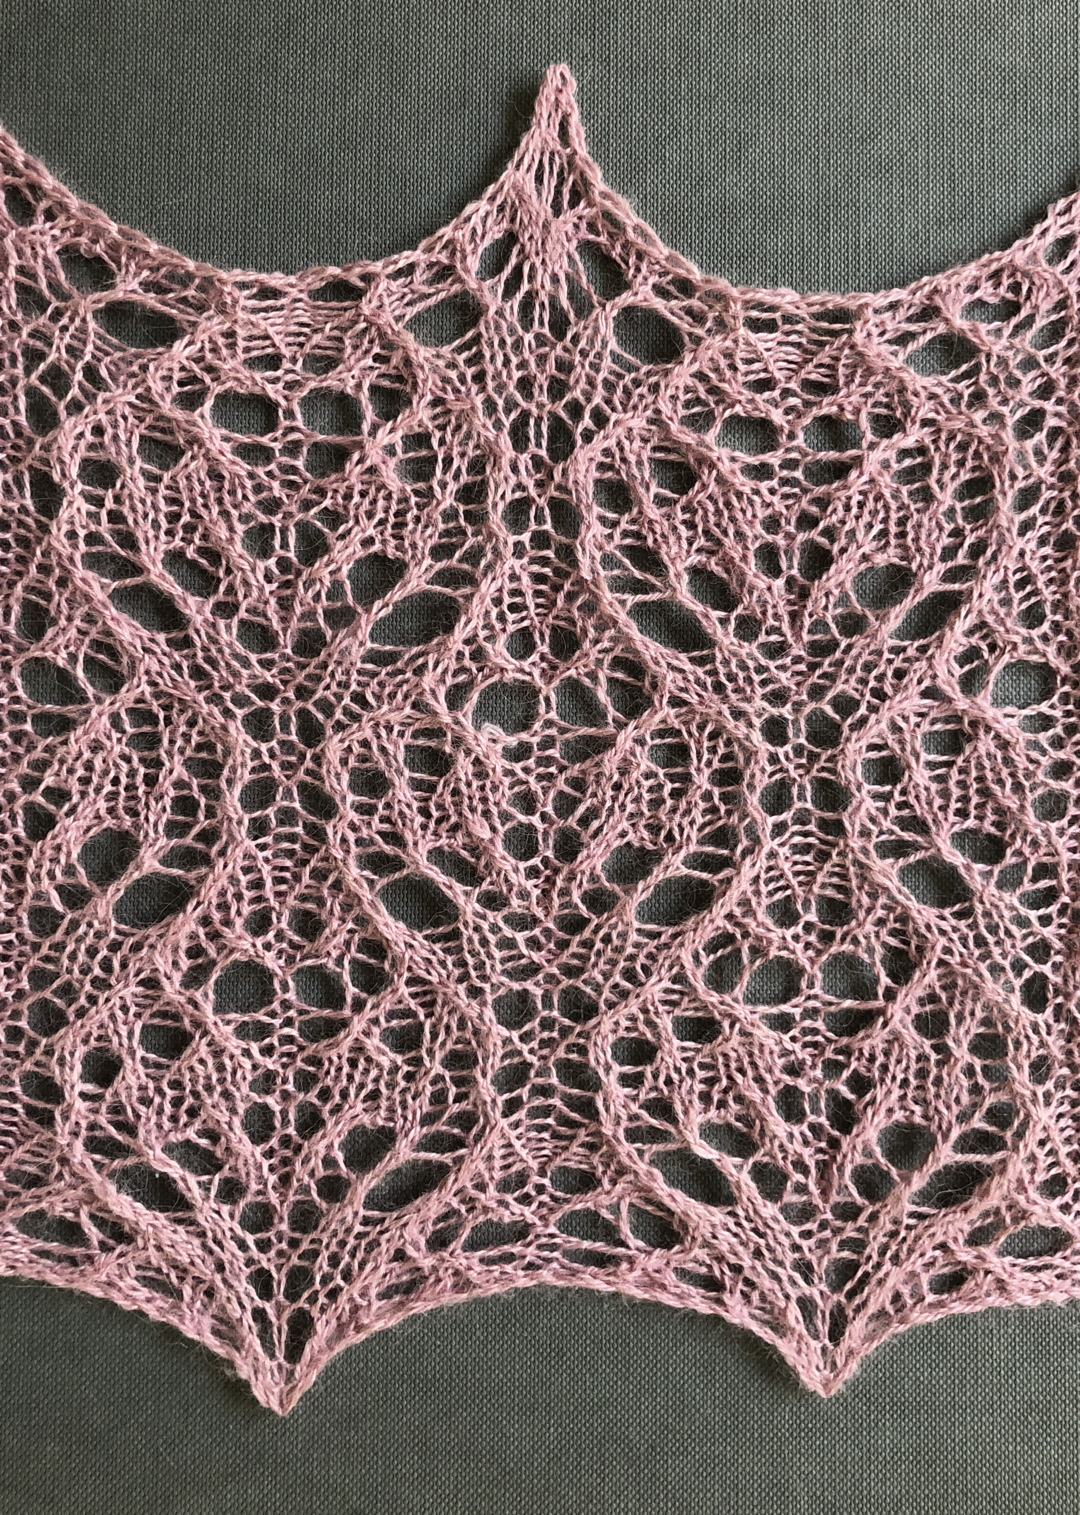 Sweetheart: a free lace knitting stitch pattern, by Naomi Parkhurst